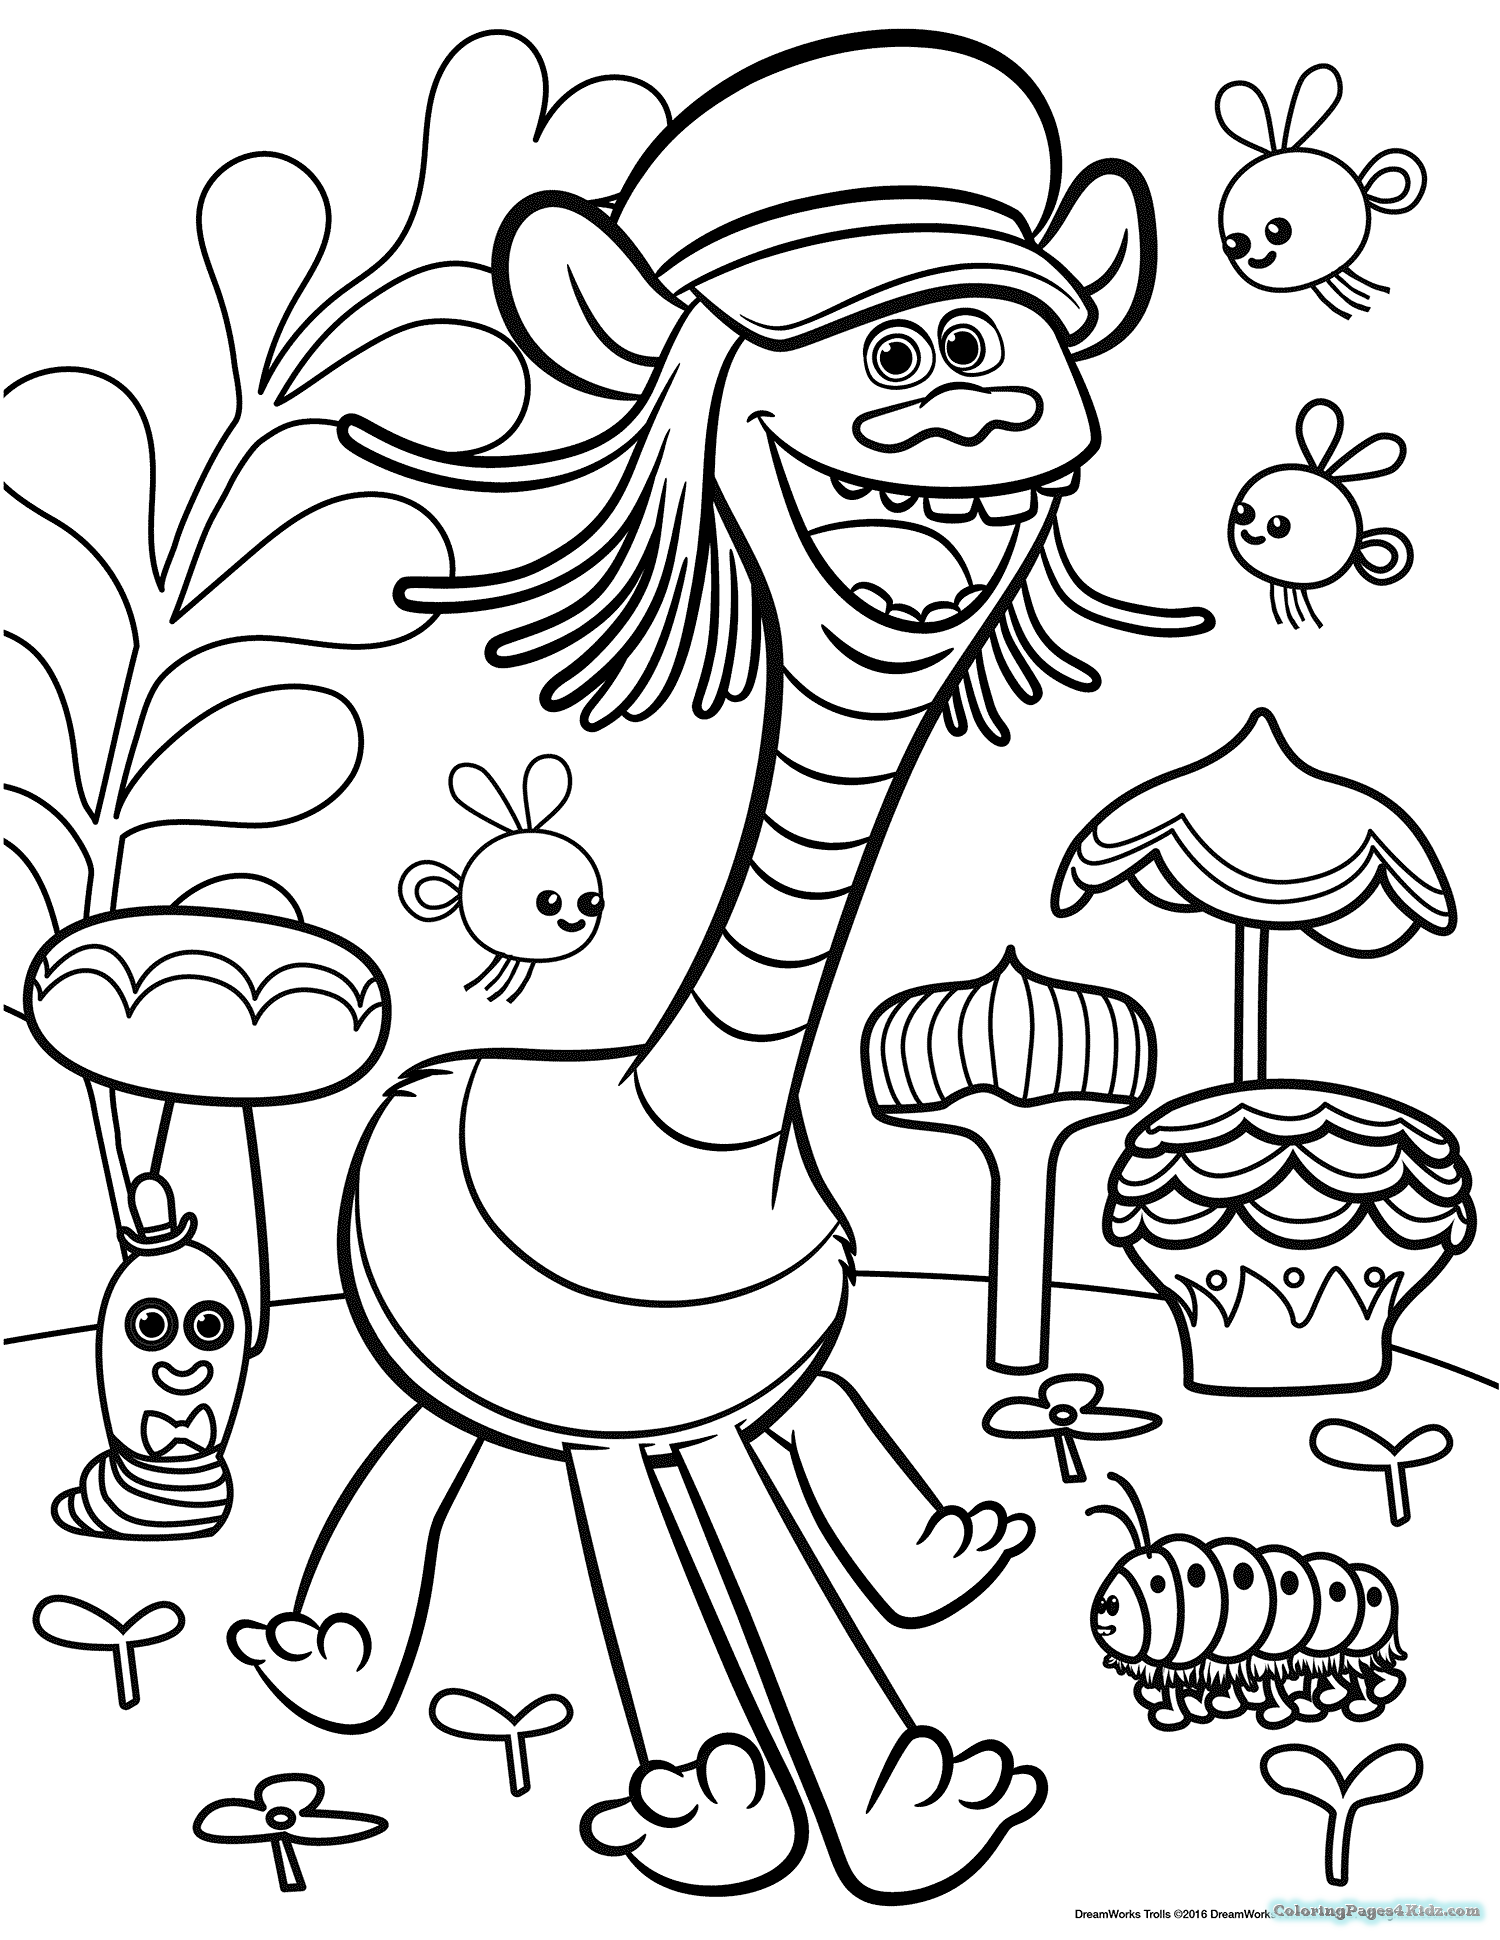 1500x1940 Dreamworks Trolls Printable Coloring Pages Coloring Pages For Kids